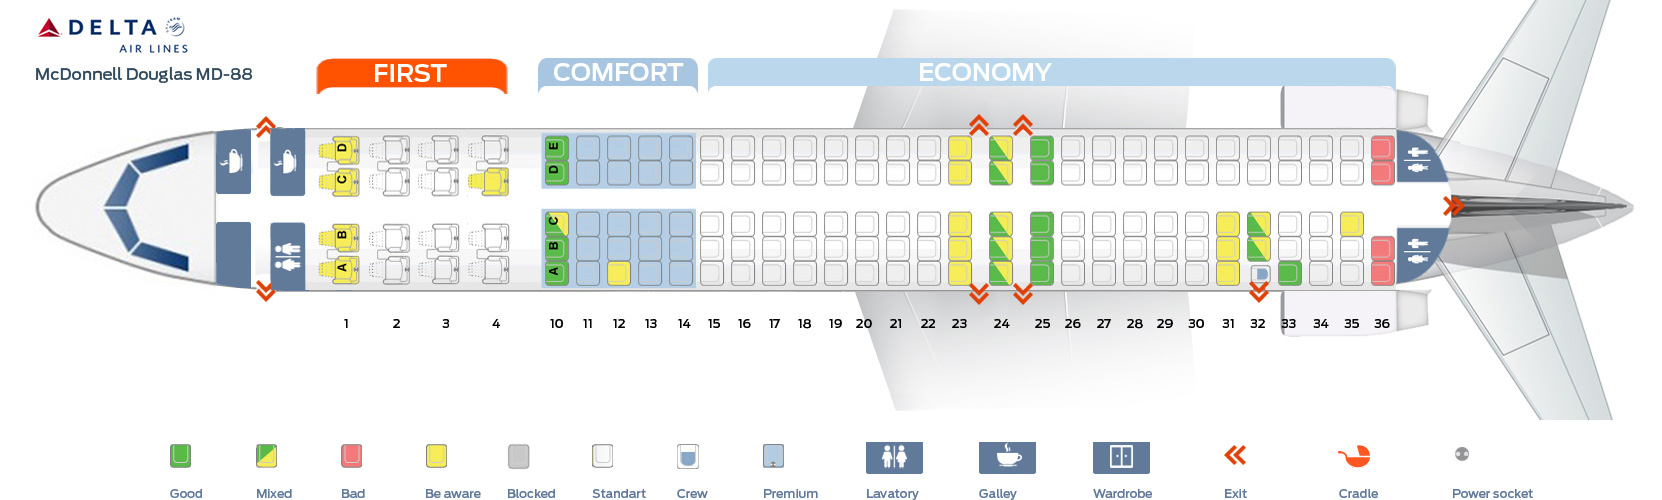 how to choose aircraft seats